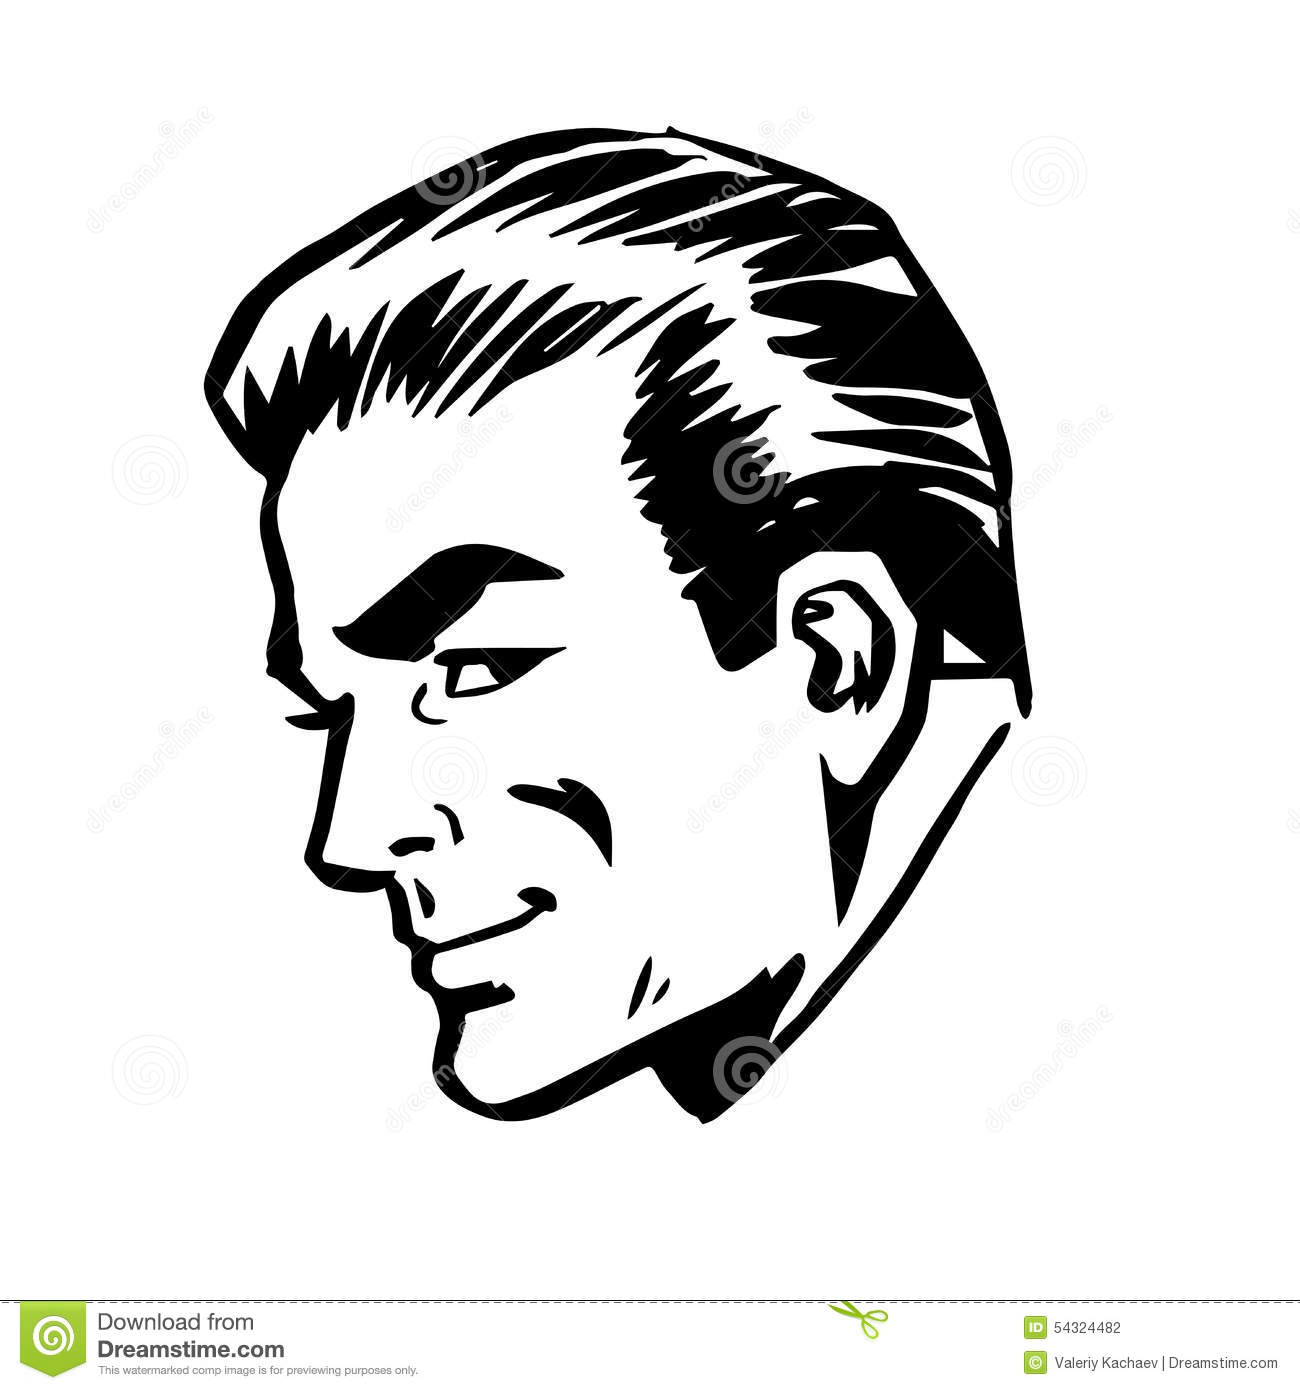 Man S Face Line Drawing : Smiling man head profile face retro line art stock